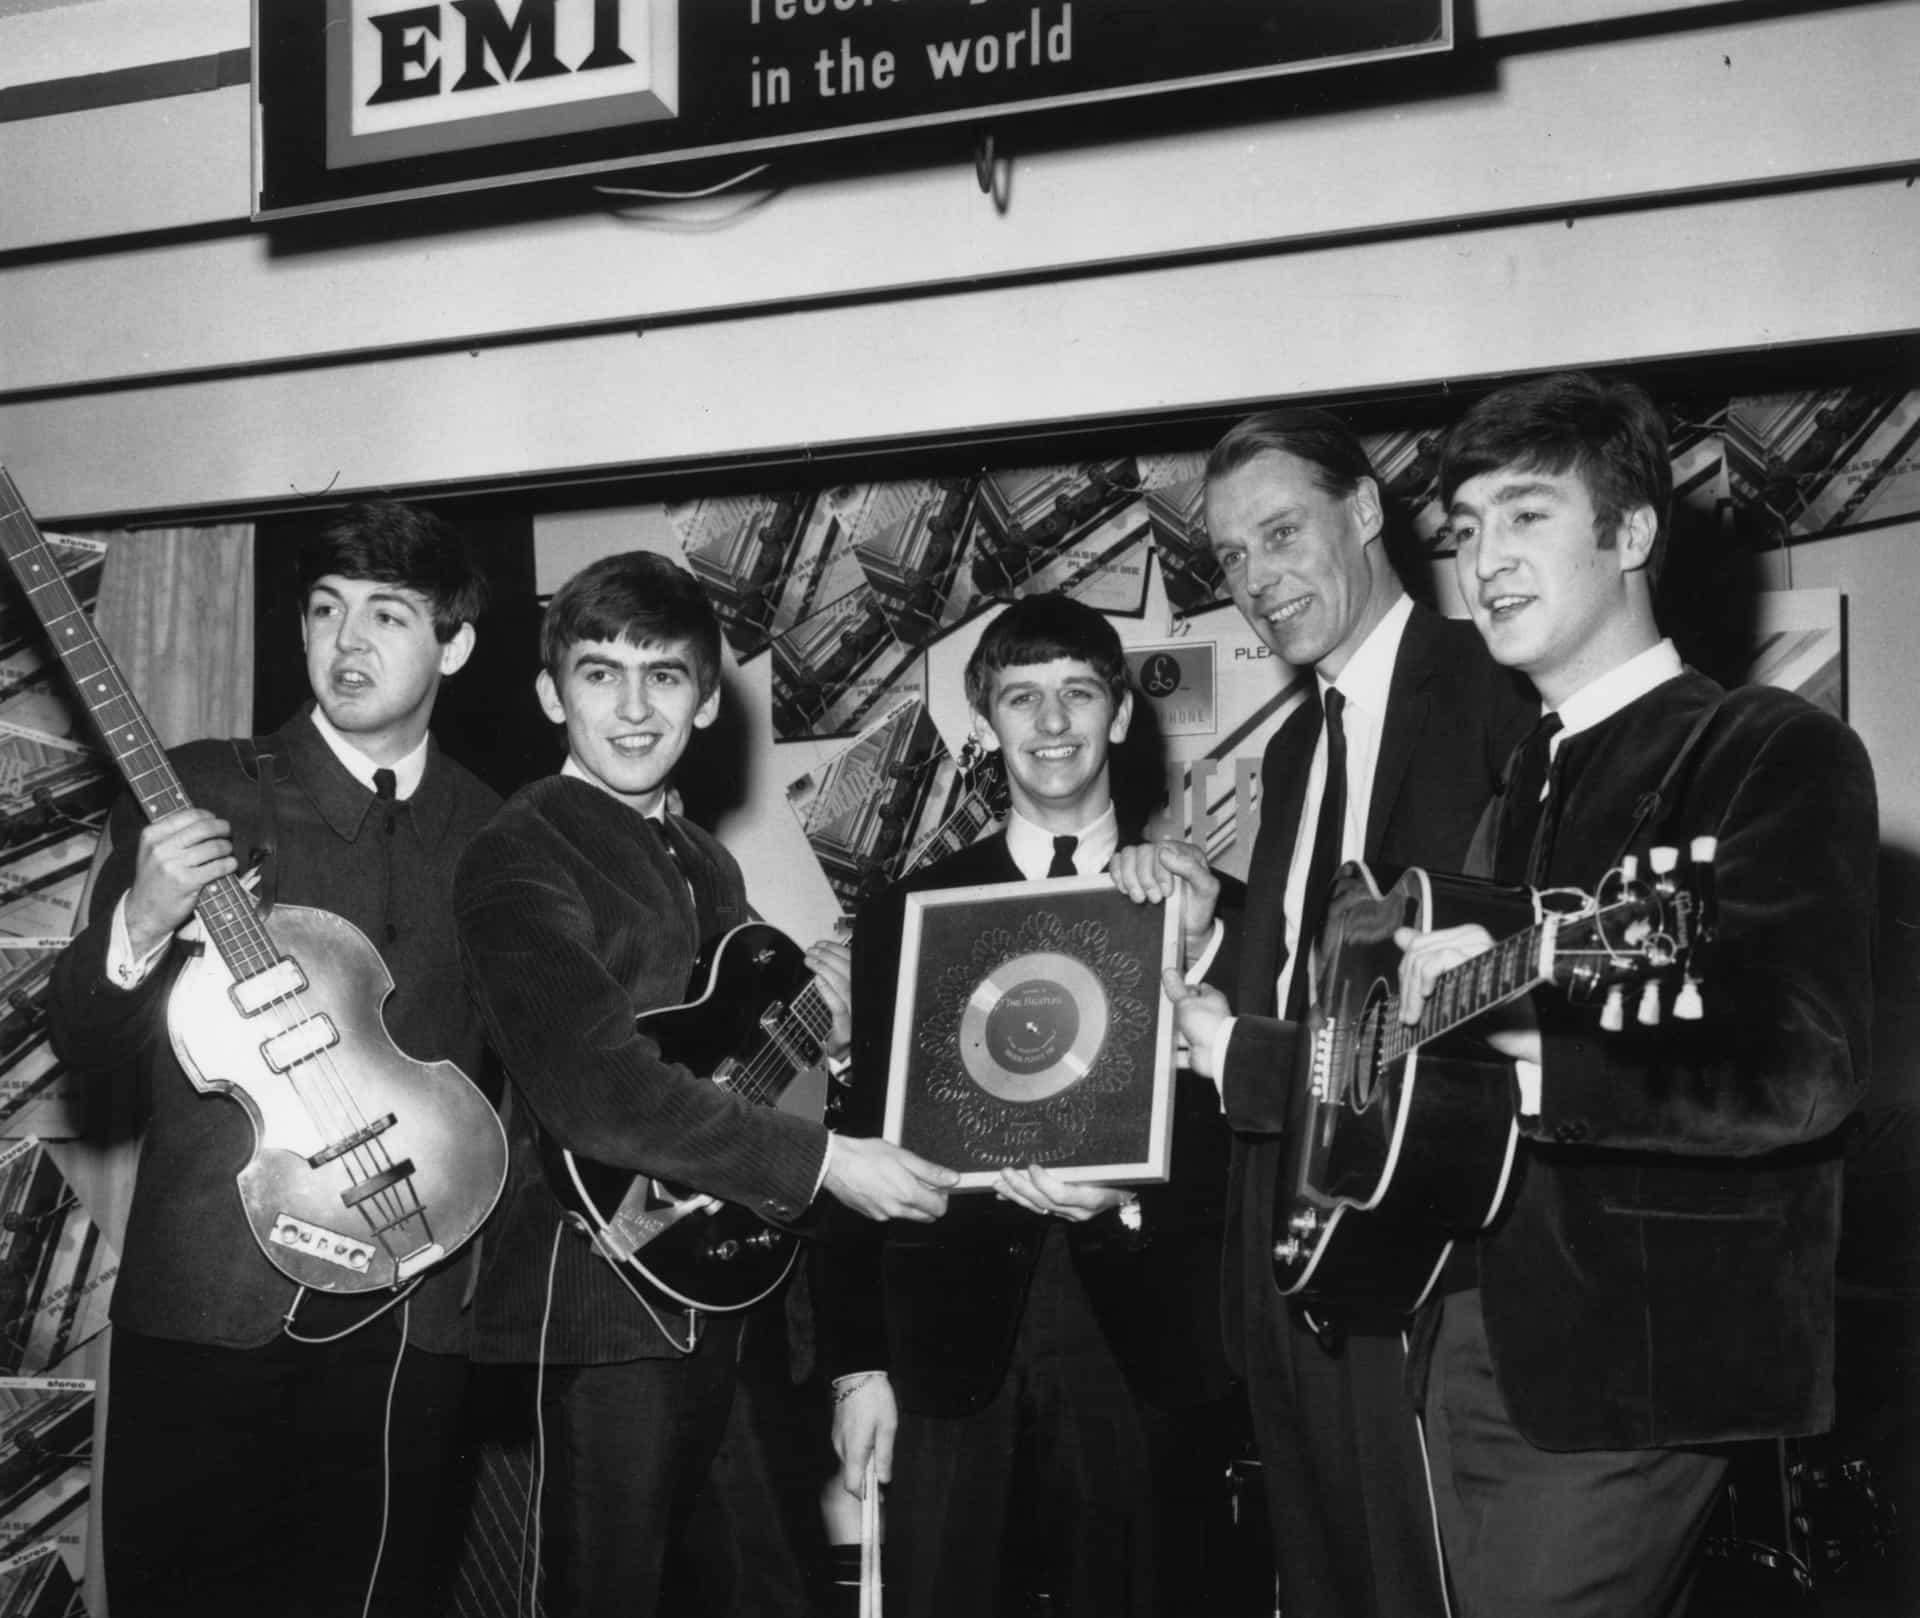 The Beatles: find out more about the Fab Four